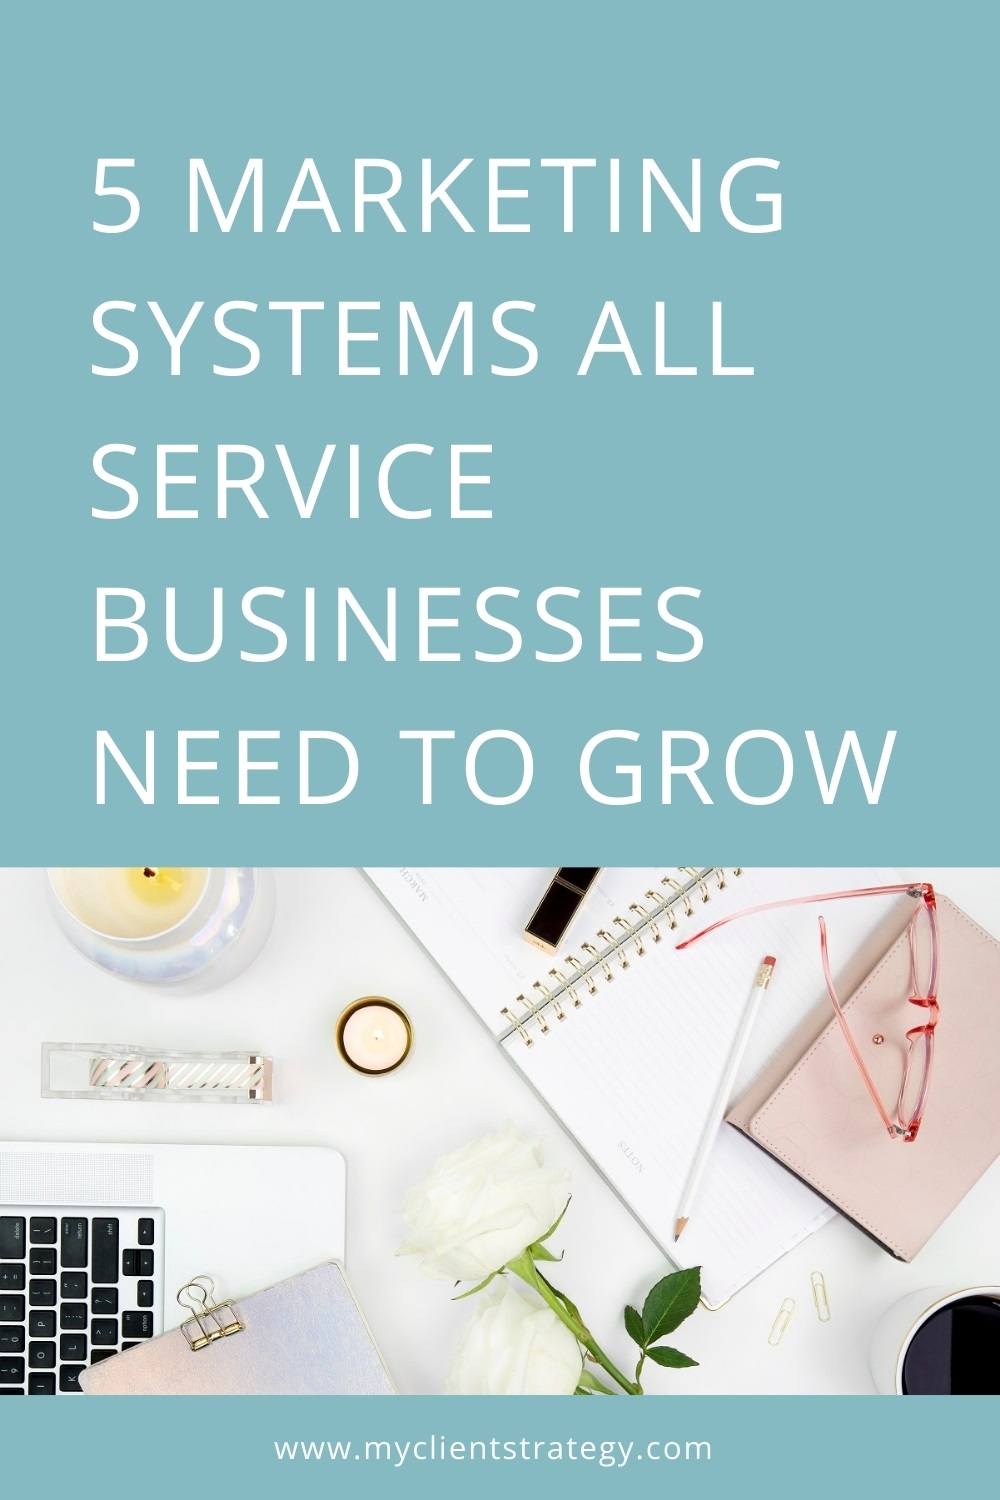 5 marketing systems all service businesses need to grow